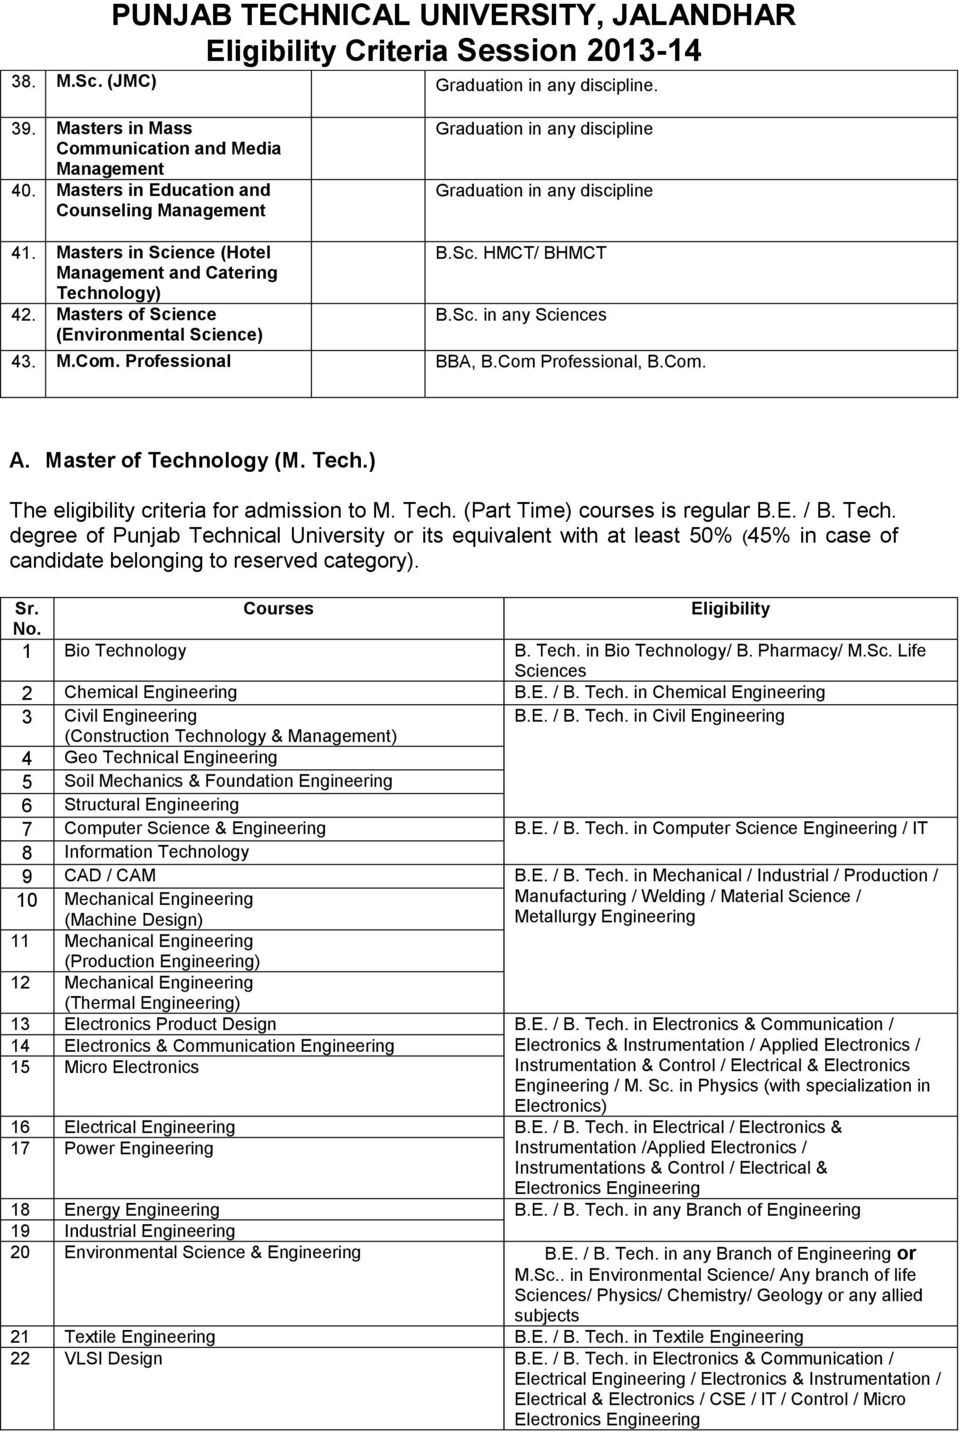 ology (M. Tech.) The eligibility criteria for admission to M. Tech. (Part Time) courses is regular B.E. / B. Tech. degree of Punjab Technical University or its equivalent with at least 50% (45% in case of candidate belonging to reserved category).